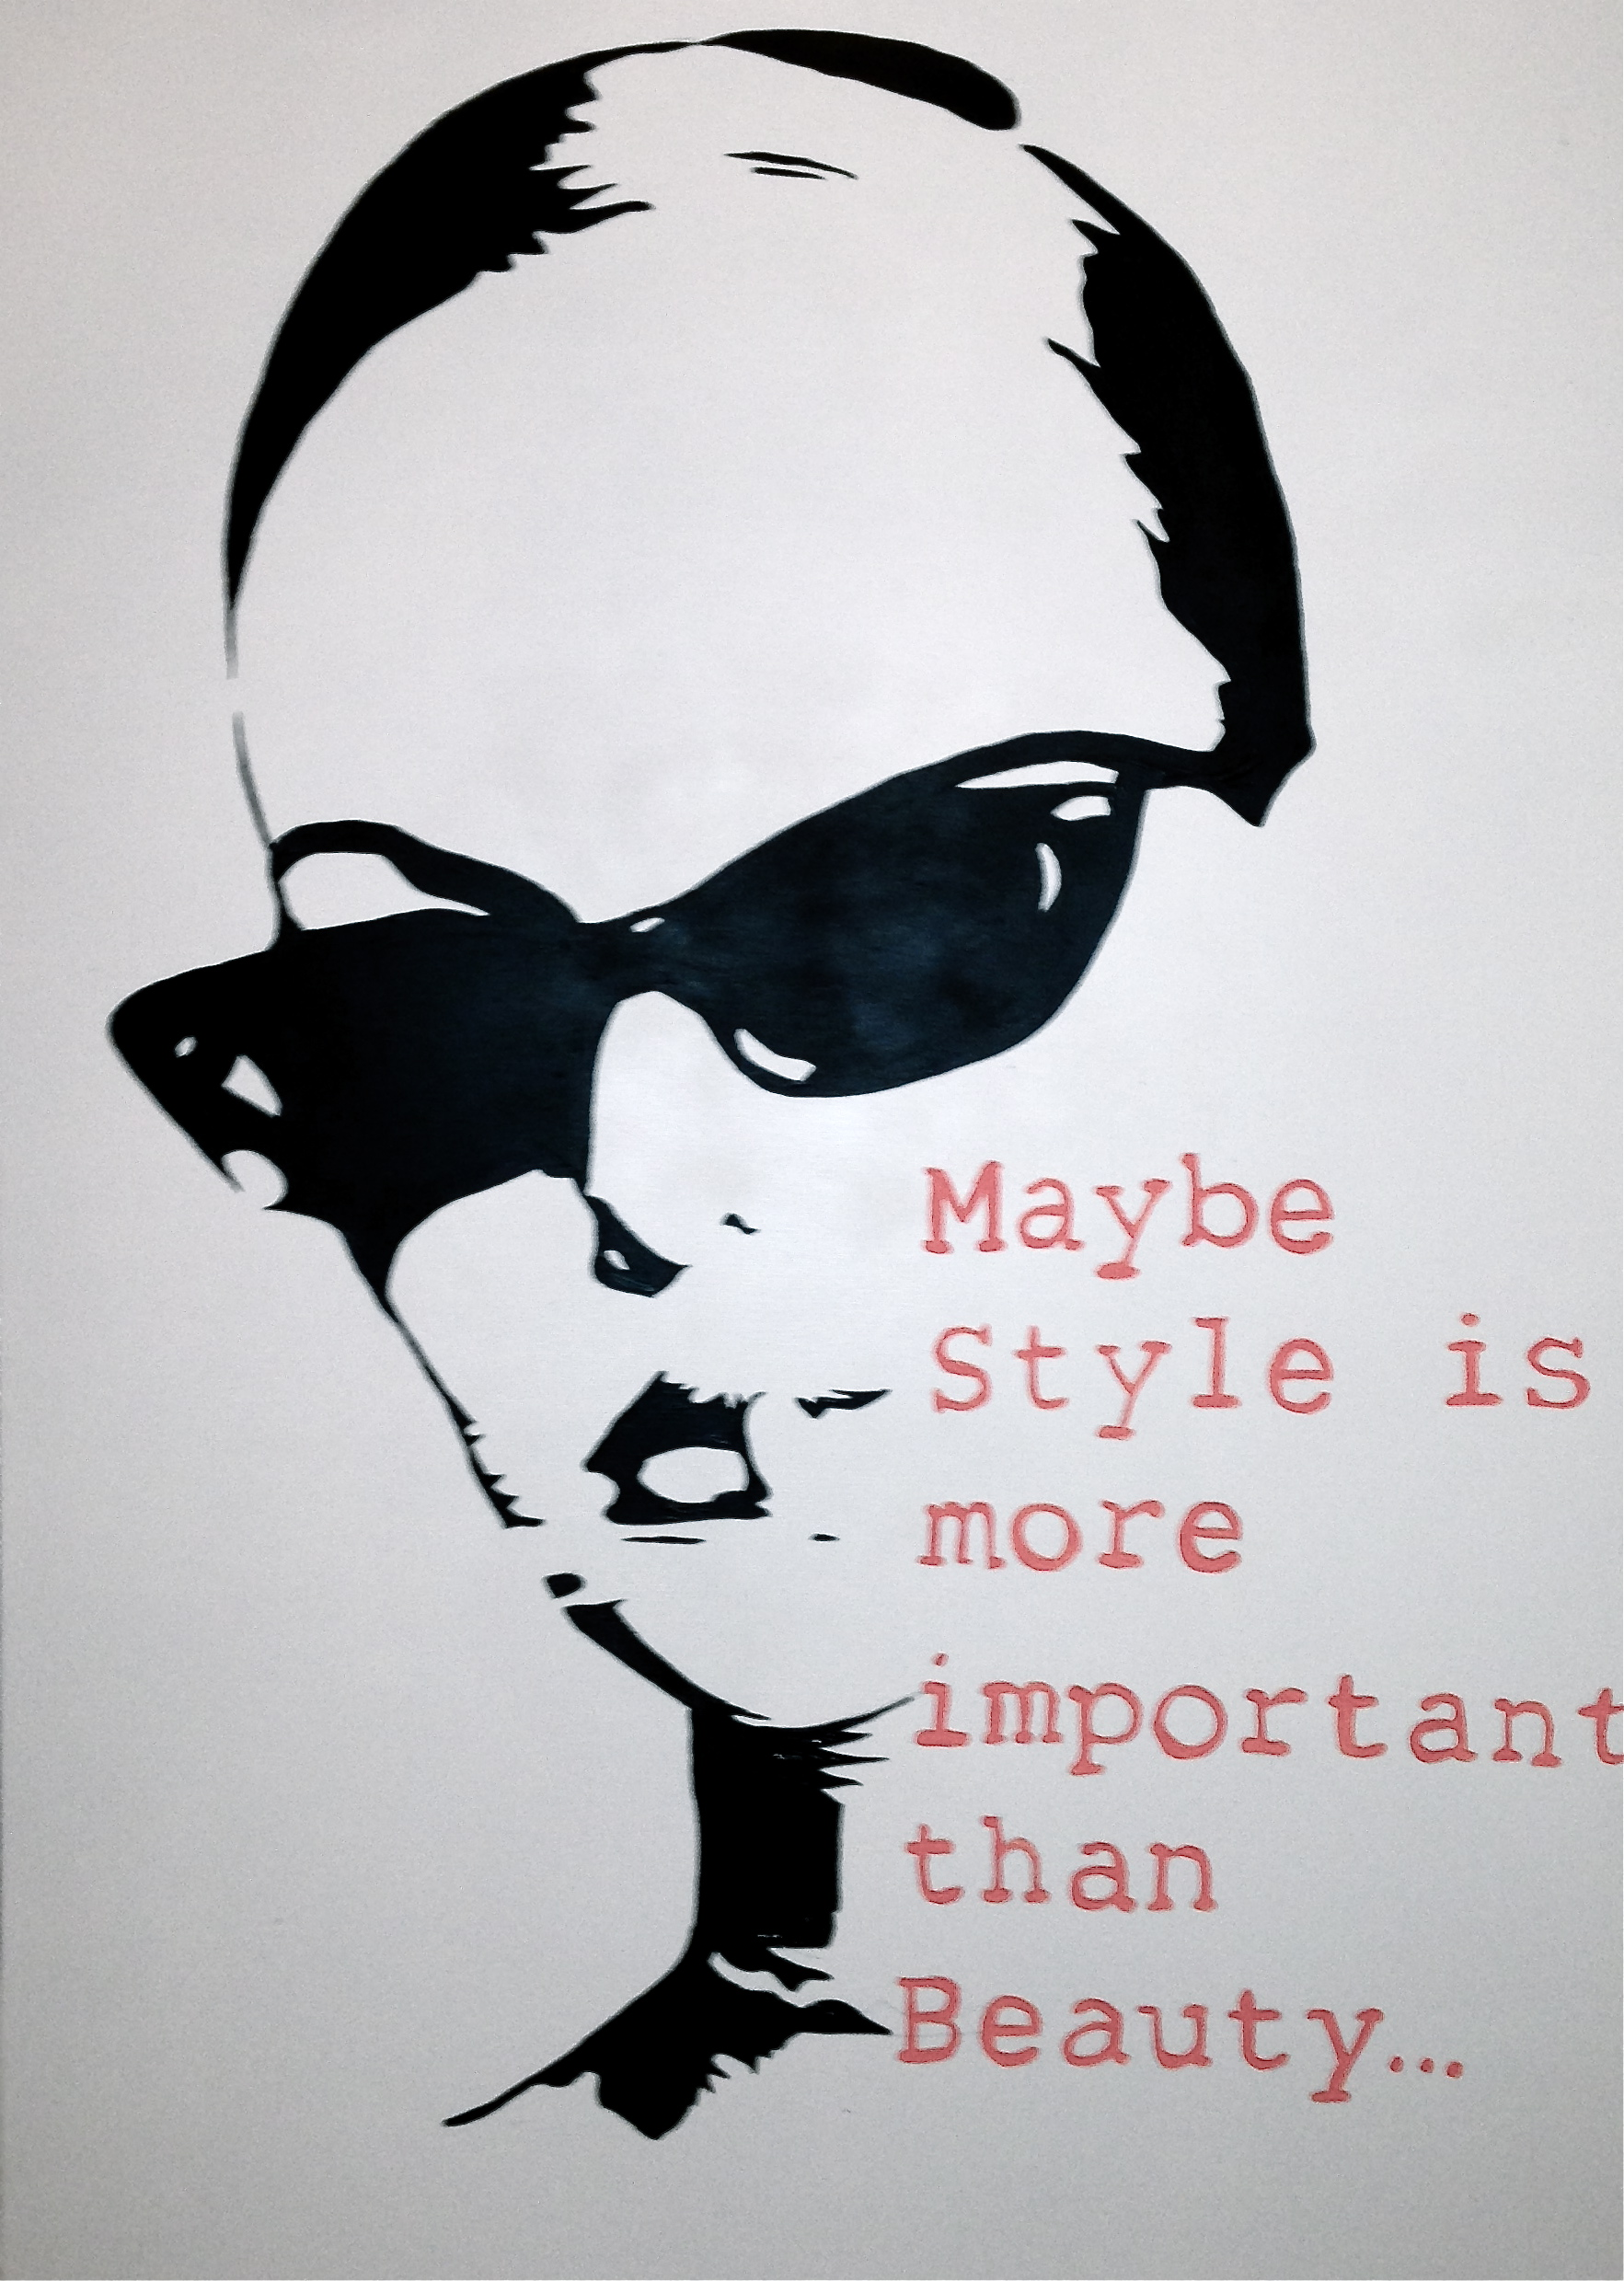 Style is More Important than Beauty by Louis-Nicolas Darbon